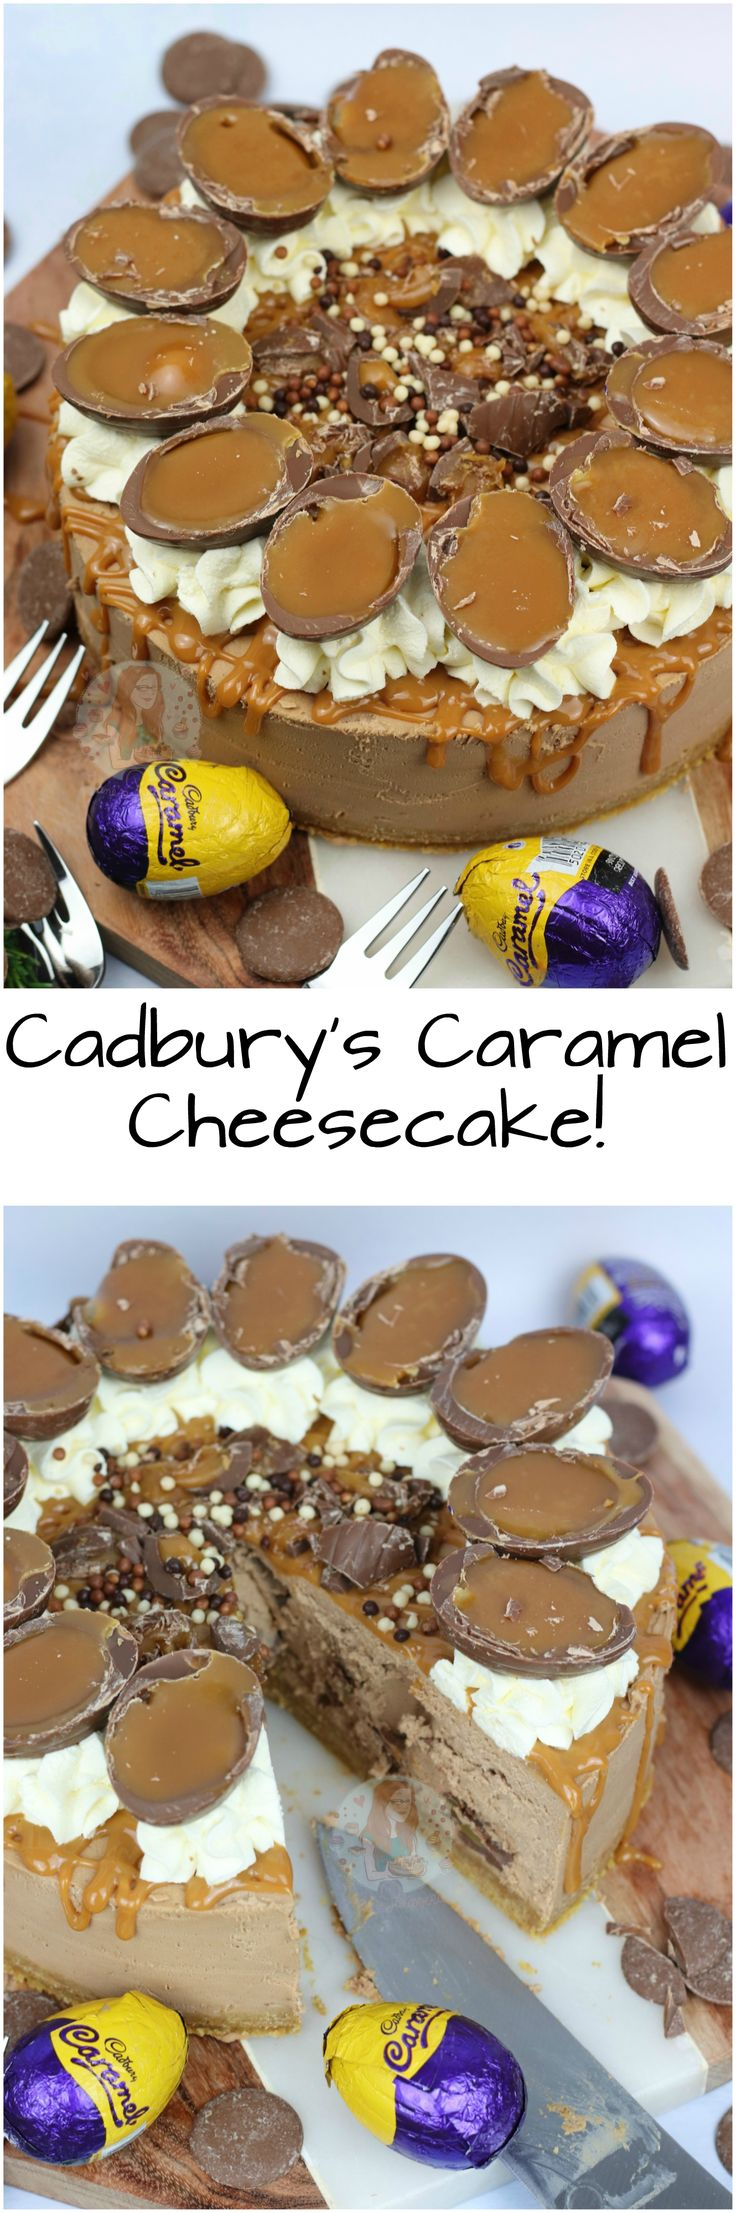 Cadbury's Caramel Cheesecake!! A No-Bake Cadbury's Caramel Cheesecake with a Buttery Biscuit Base, Chocolate Cheesecake filling with Cadburys Caramel Chunks, Whipped Cream, Caramel Drizzle, and Cadbury's Caramel Eggs!